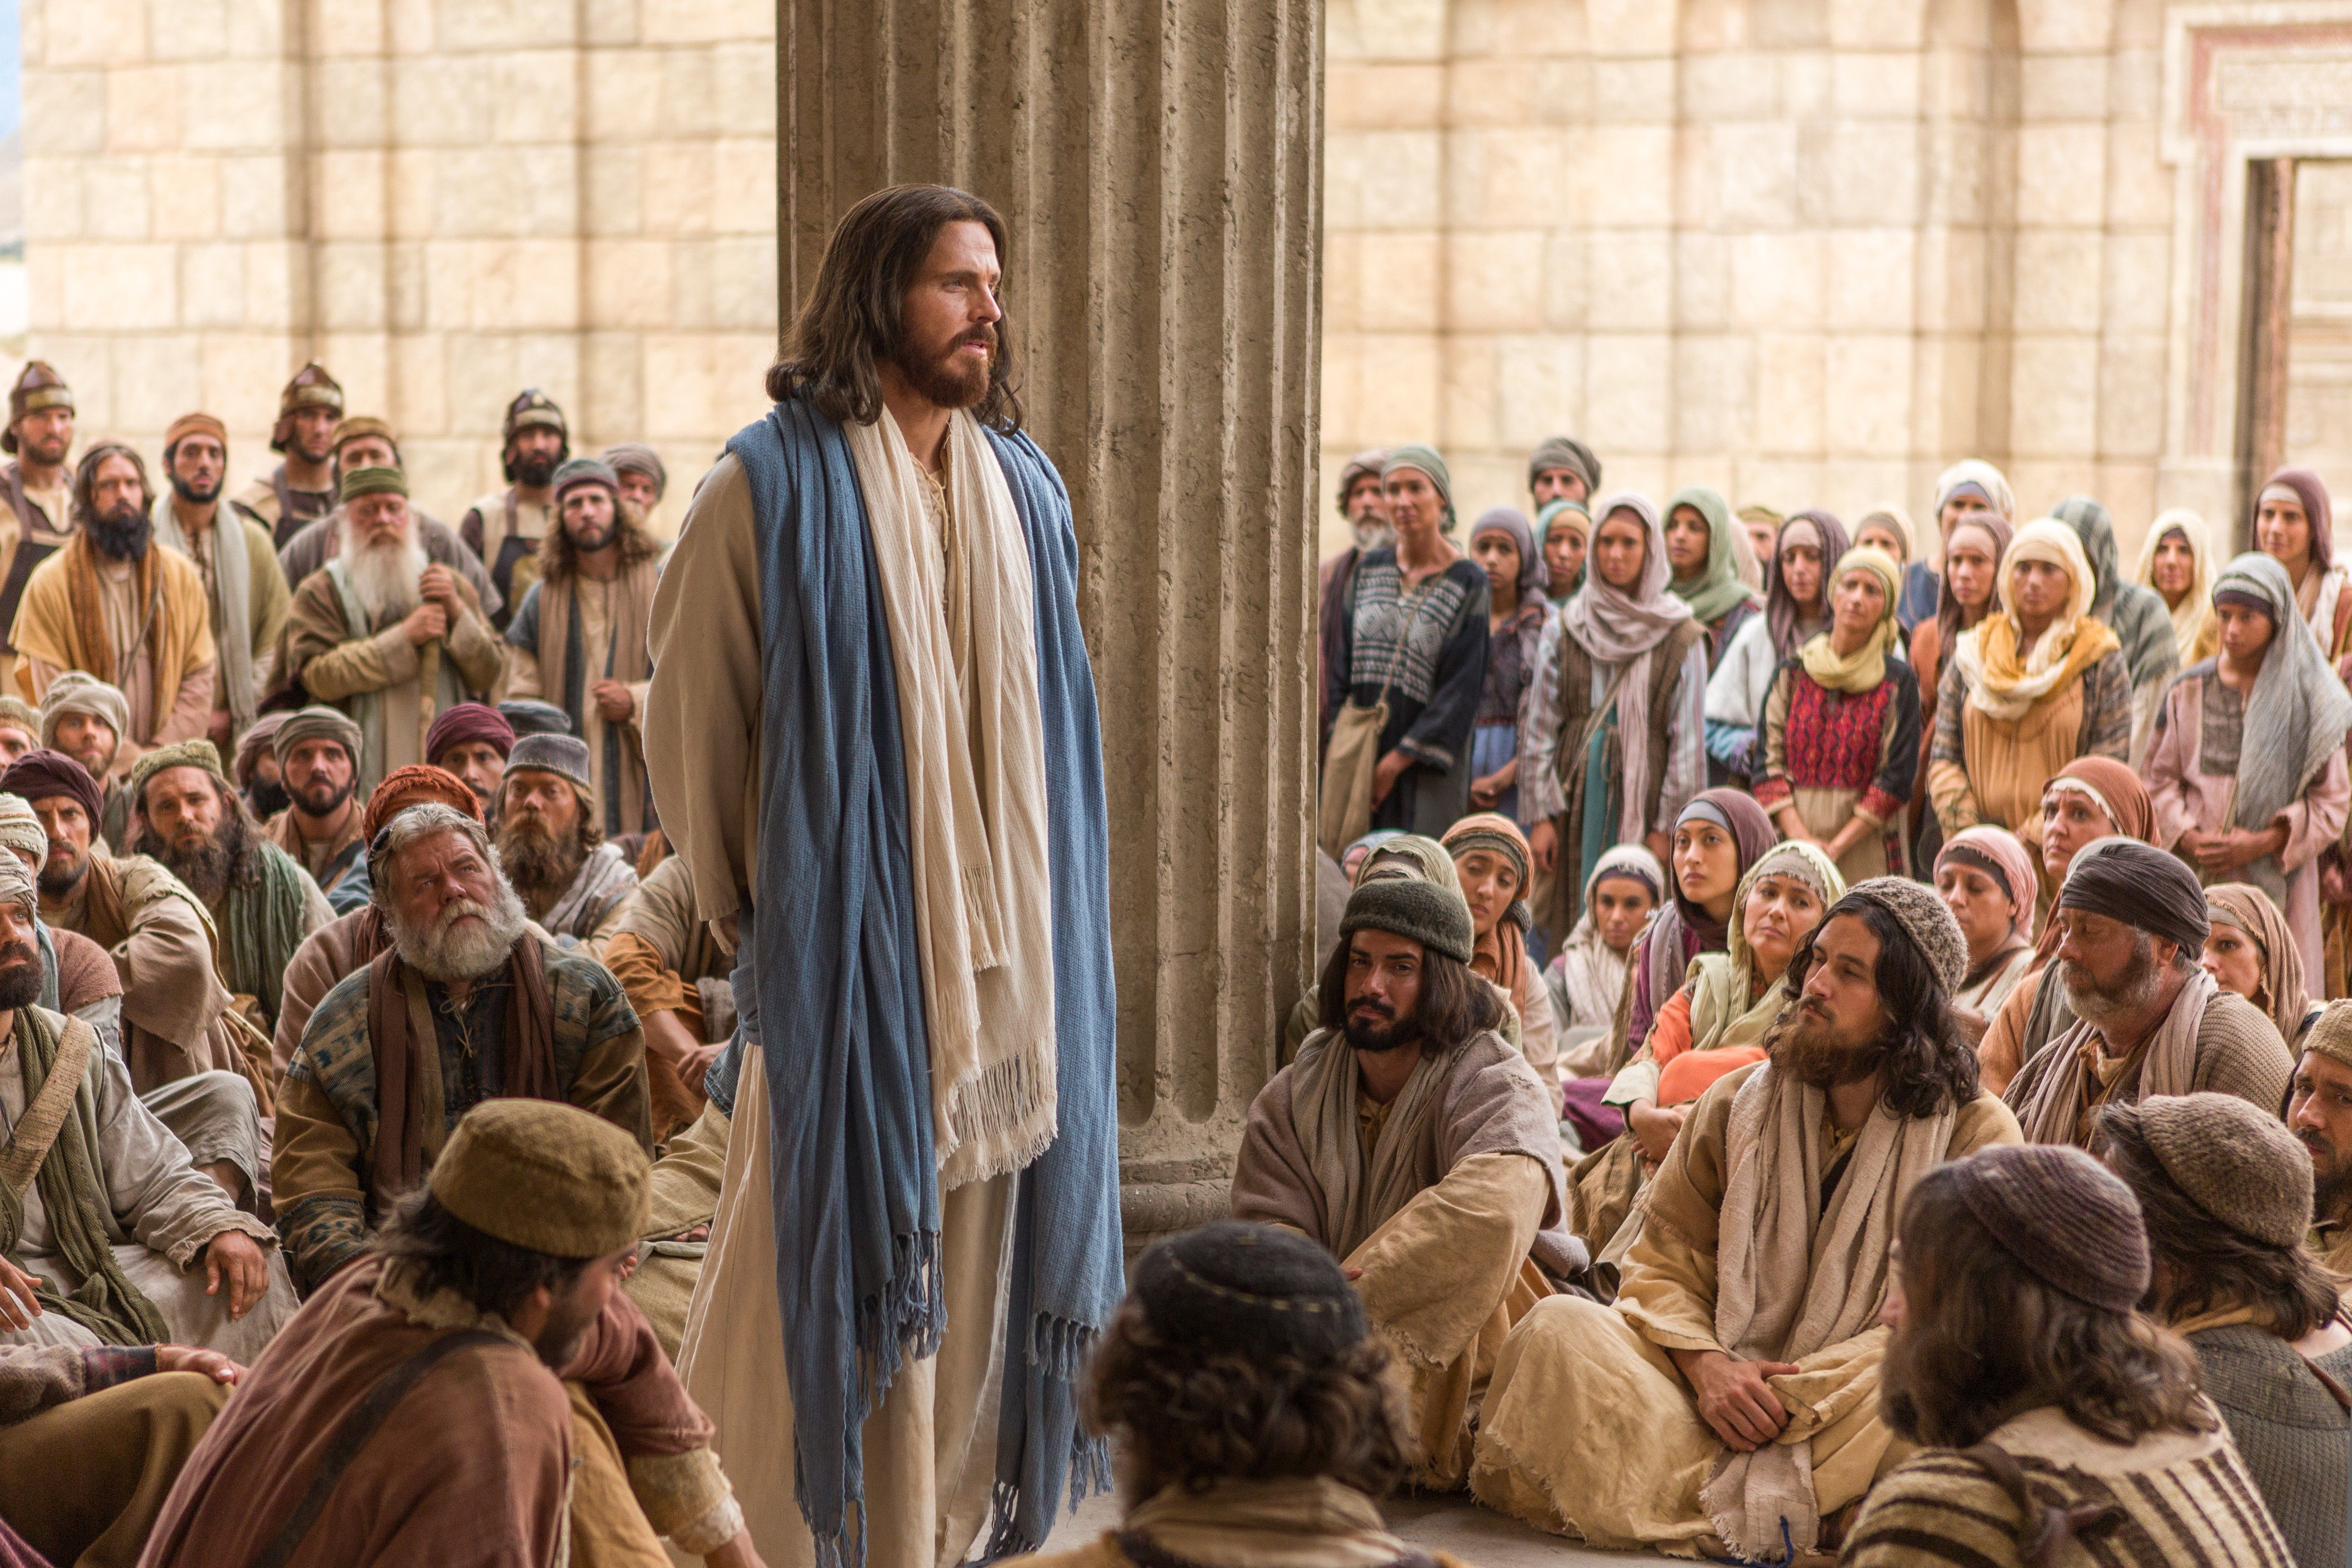 Jesus stands and teaches to listeners around Him.